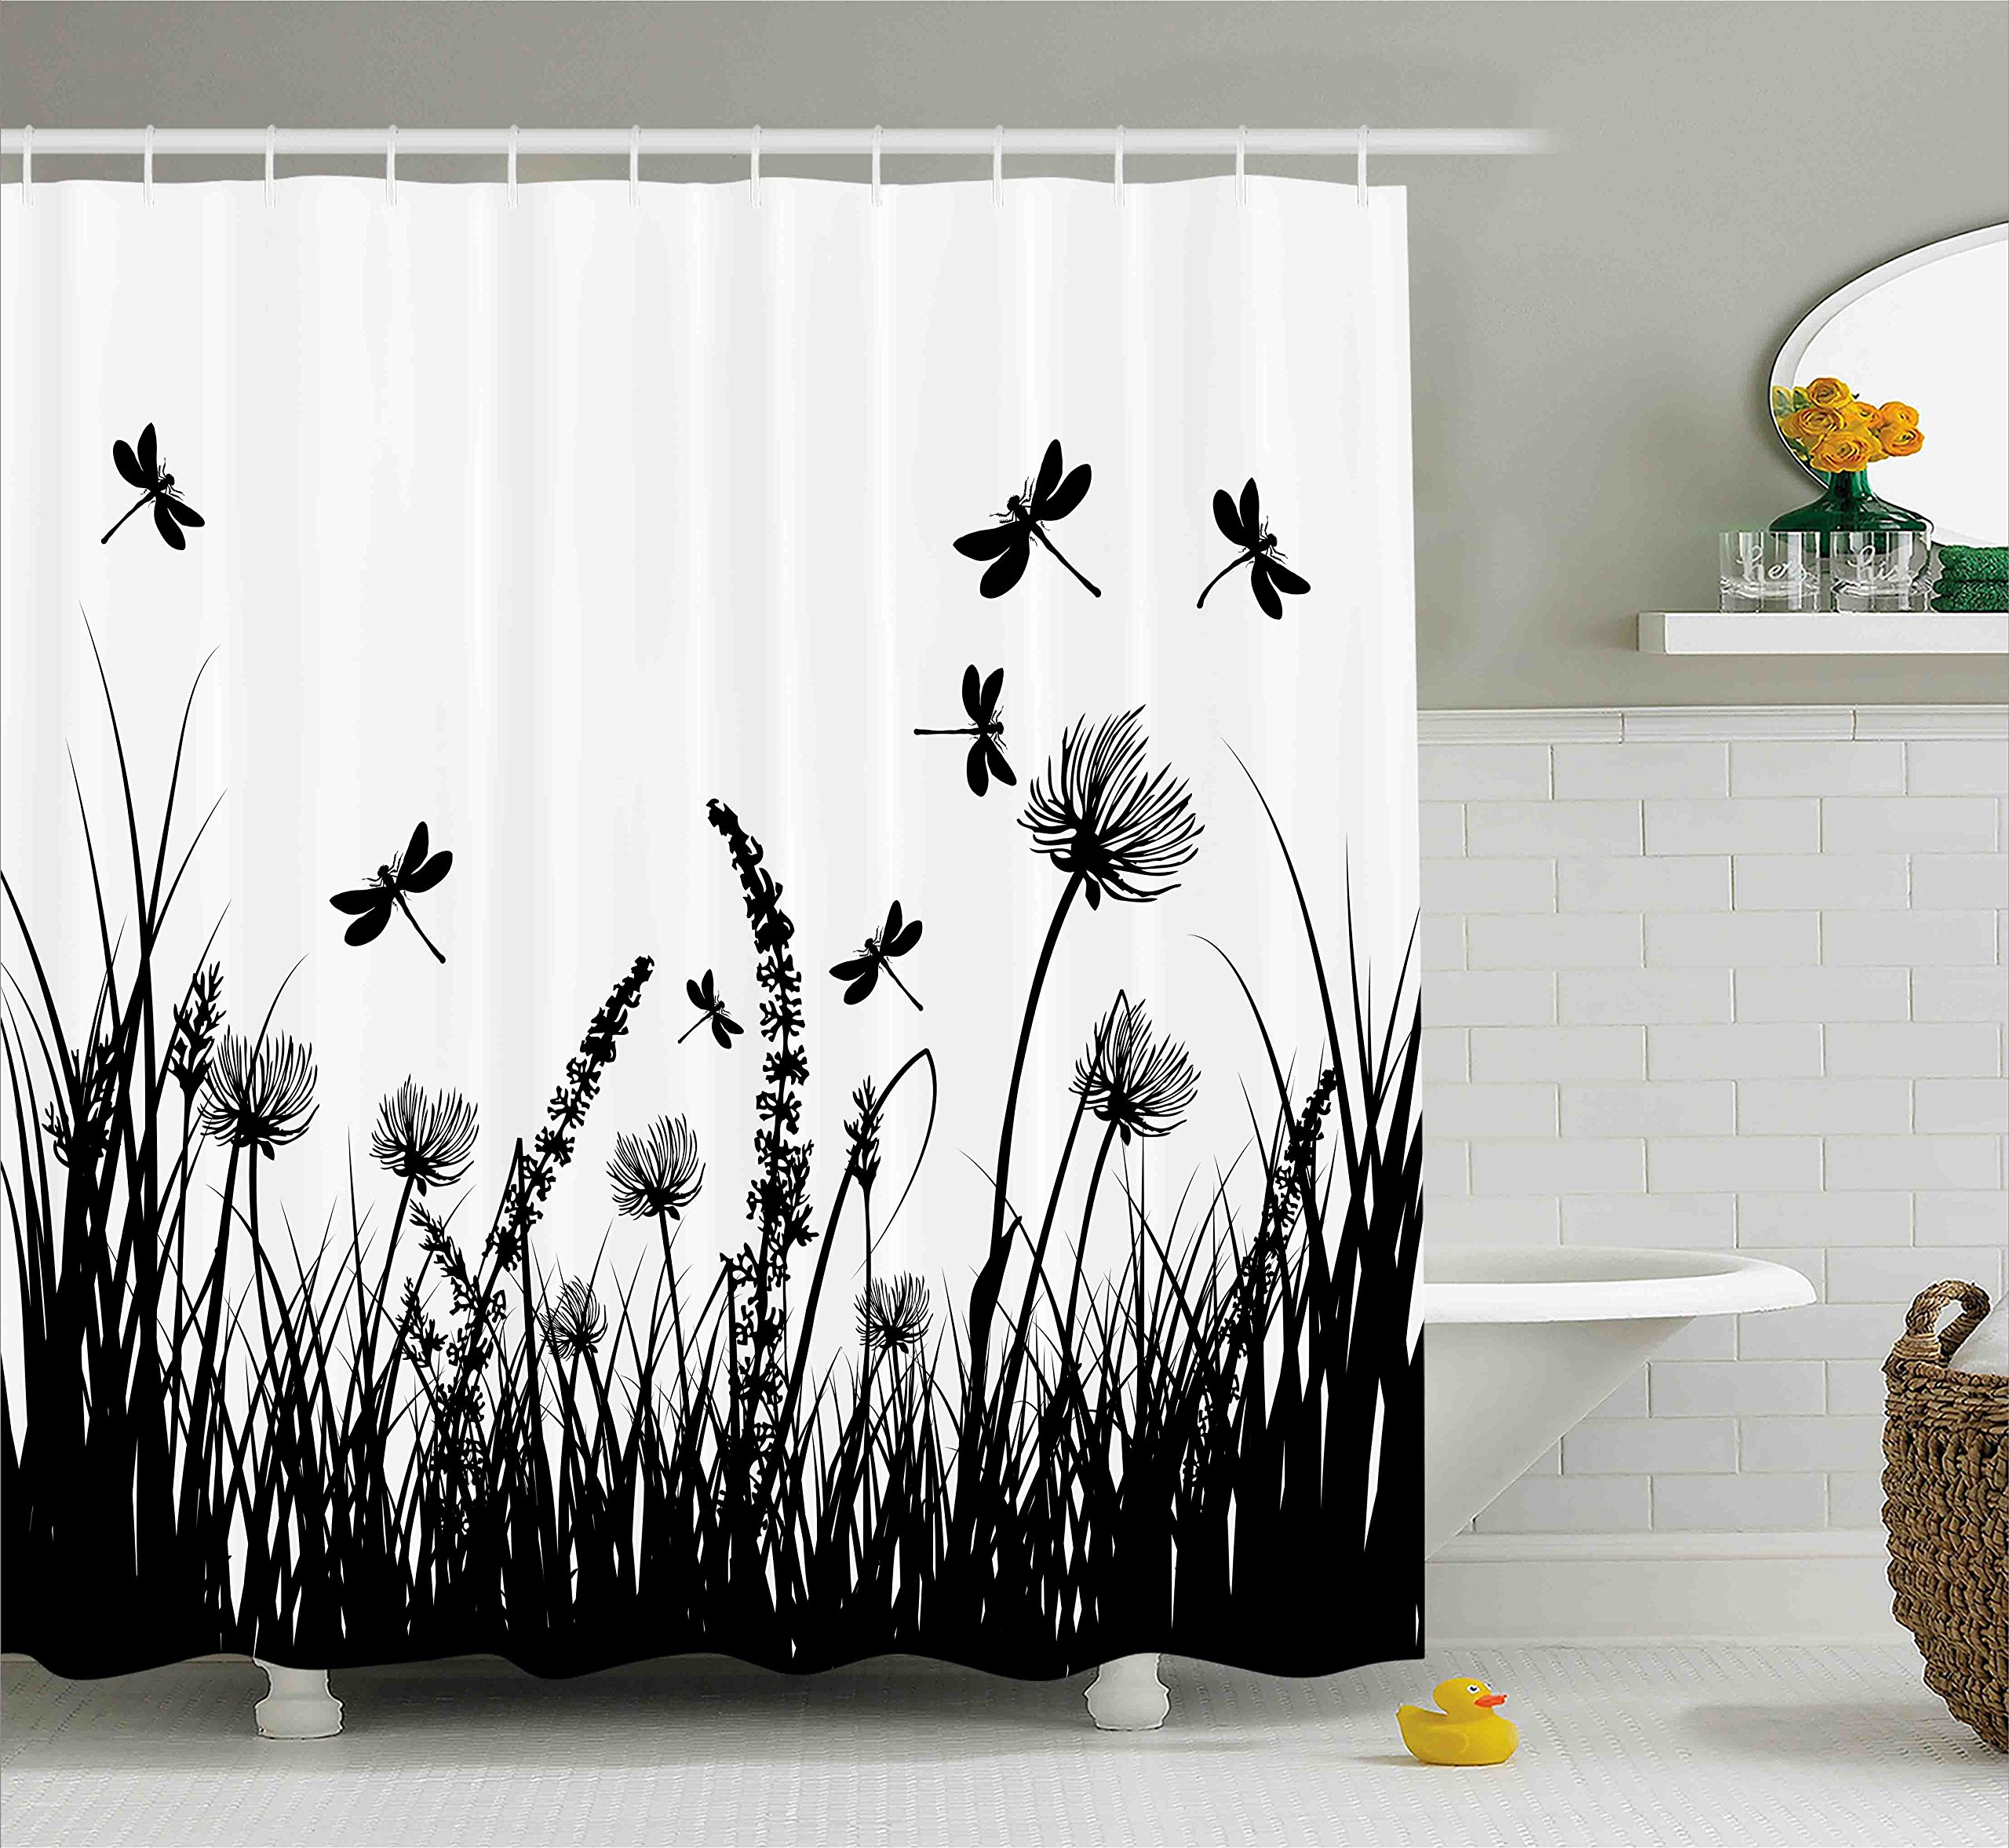 Ambesonne Nature Shower Curtain, Grass Bush Meadow Silhouette with Dragonflies Flying Spring Garden Plants Display, Fabric Bathroom Decor Set with Hooks, 75 inches Long, Black White